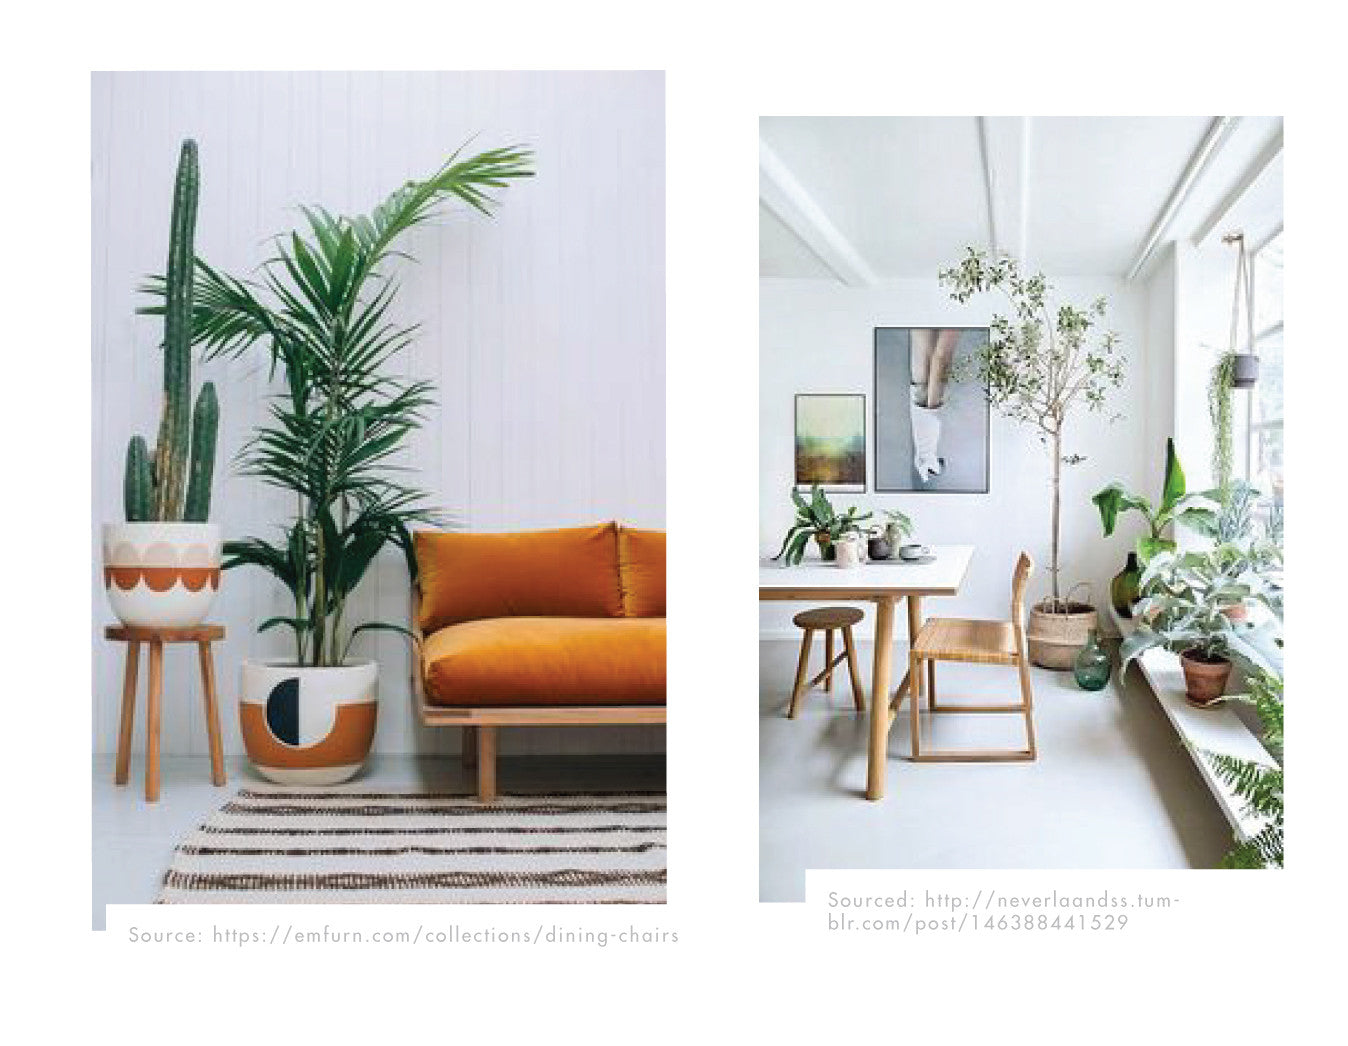 renew/plants-for-the-home/blog/beinspired/lulasclan